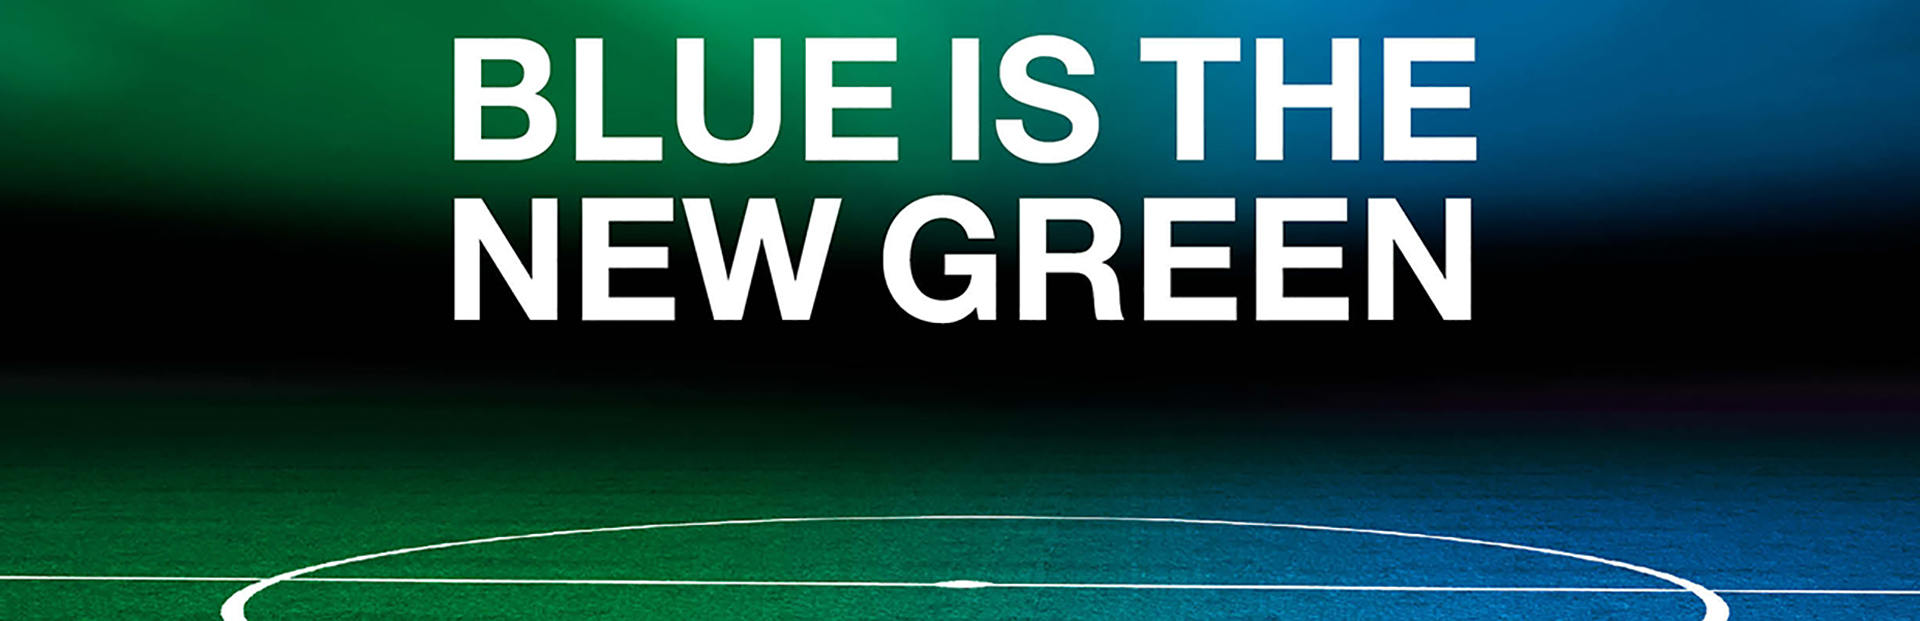 Blue is the New Green!